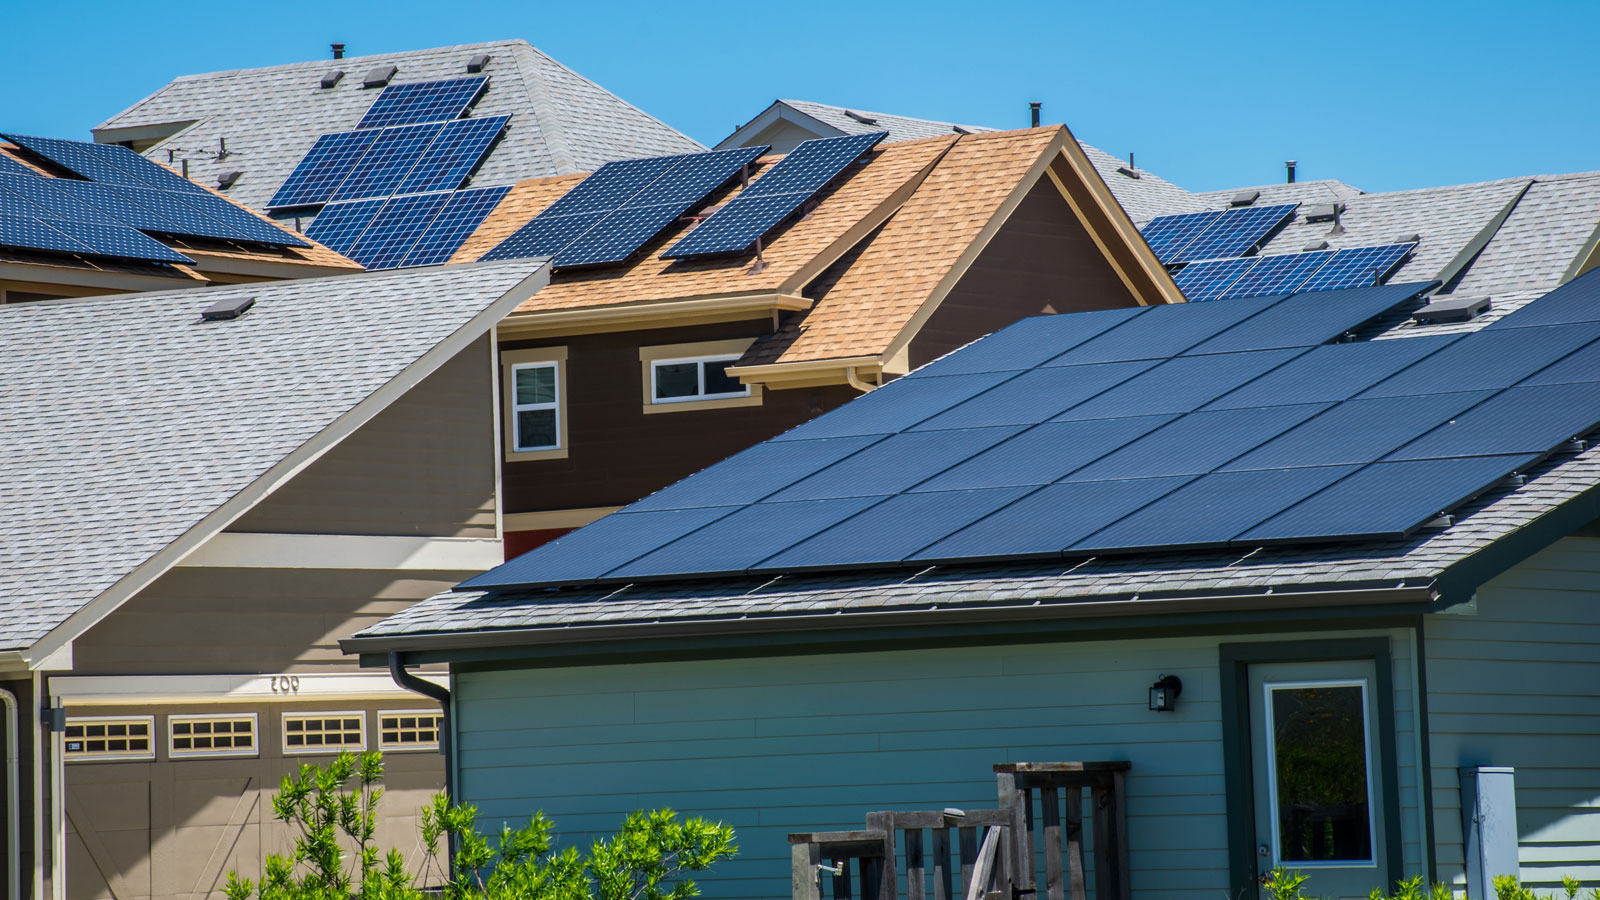 WEB_AME_Solar-Roofs_Homepage-Background_Roschetzky-Photography-via-shutterstock